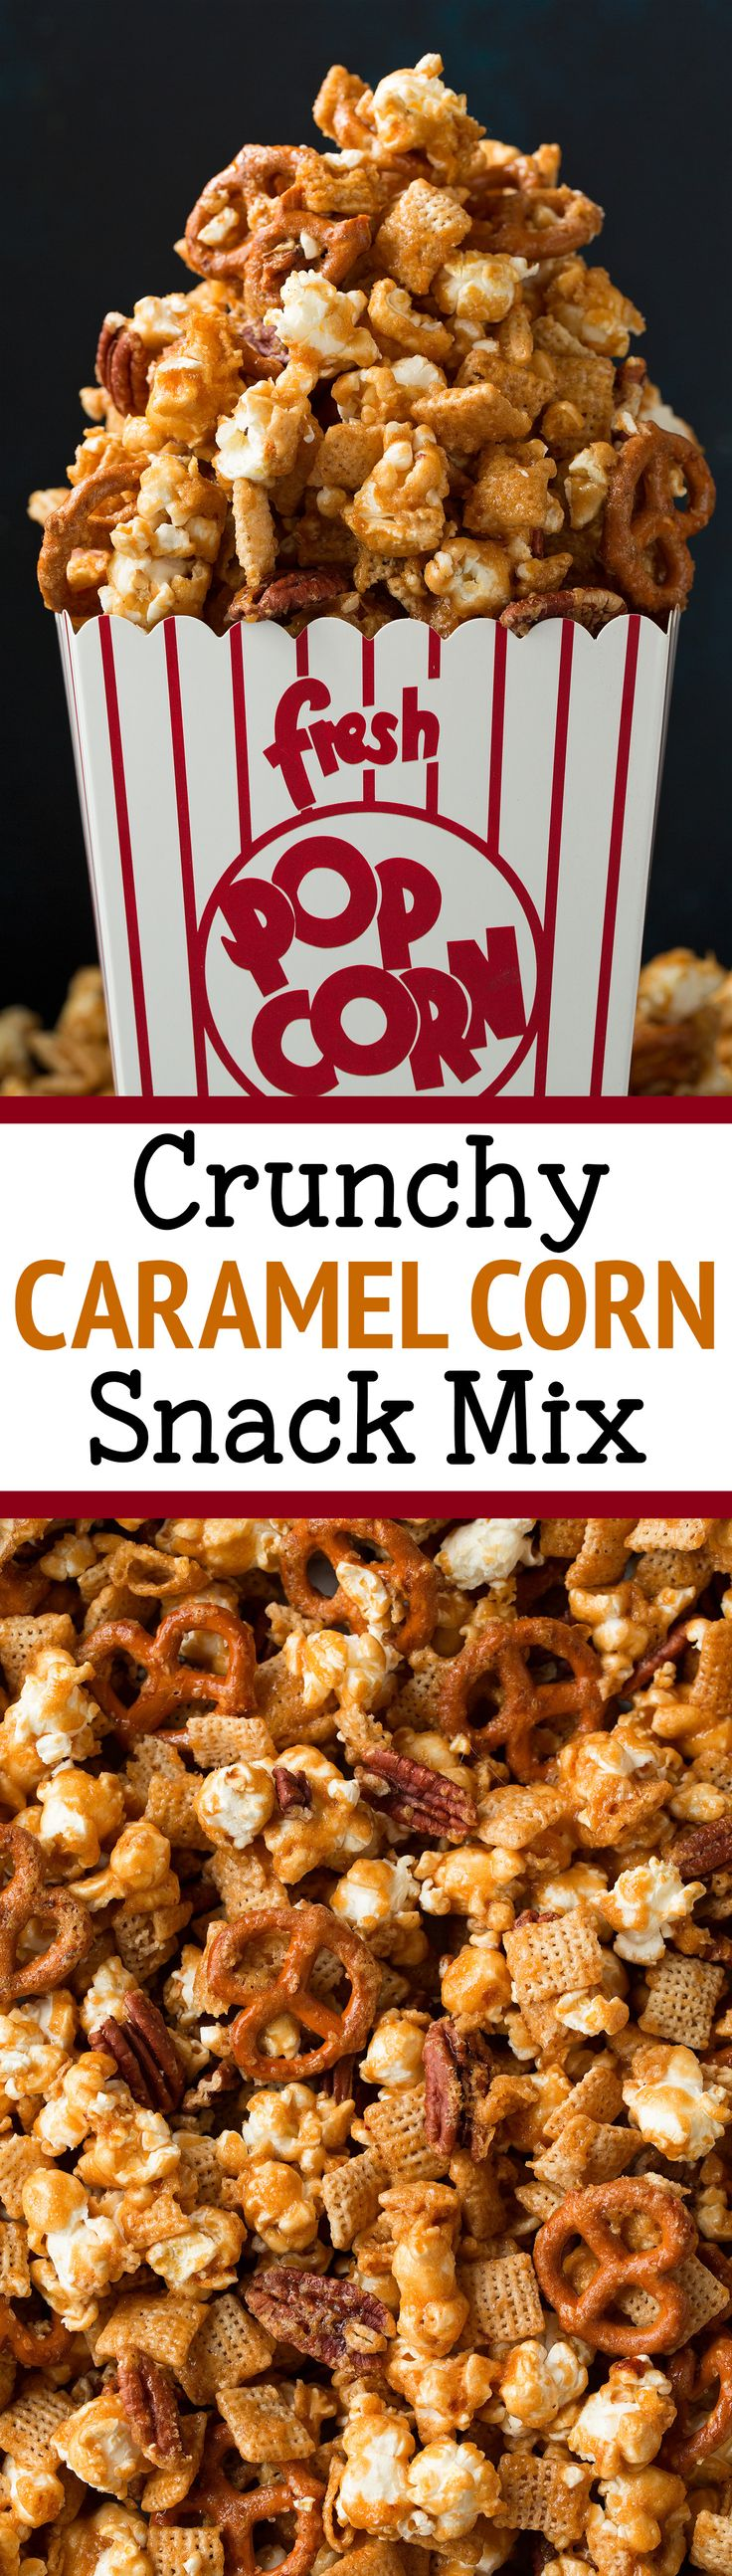 Crunchy Caramel Corn Snack Mix - Cooking Classy